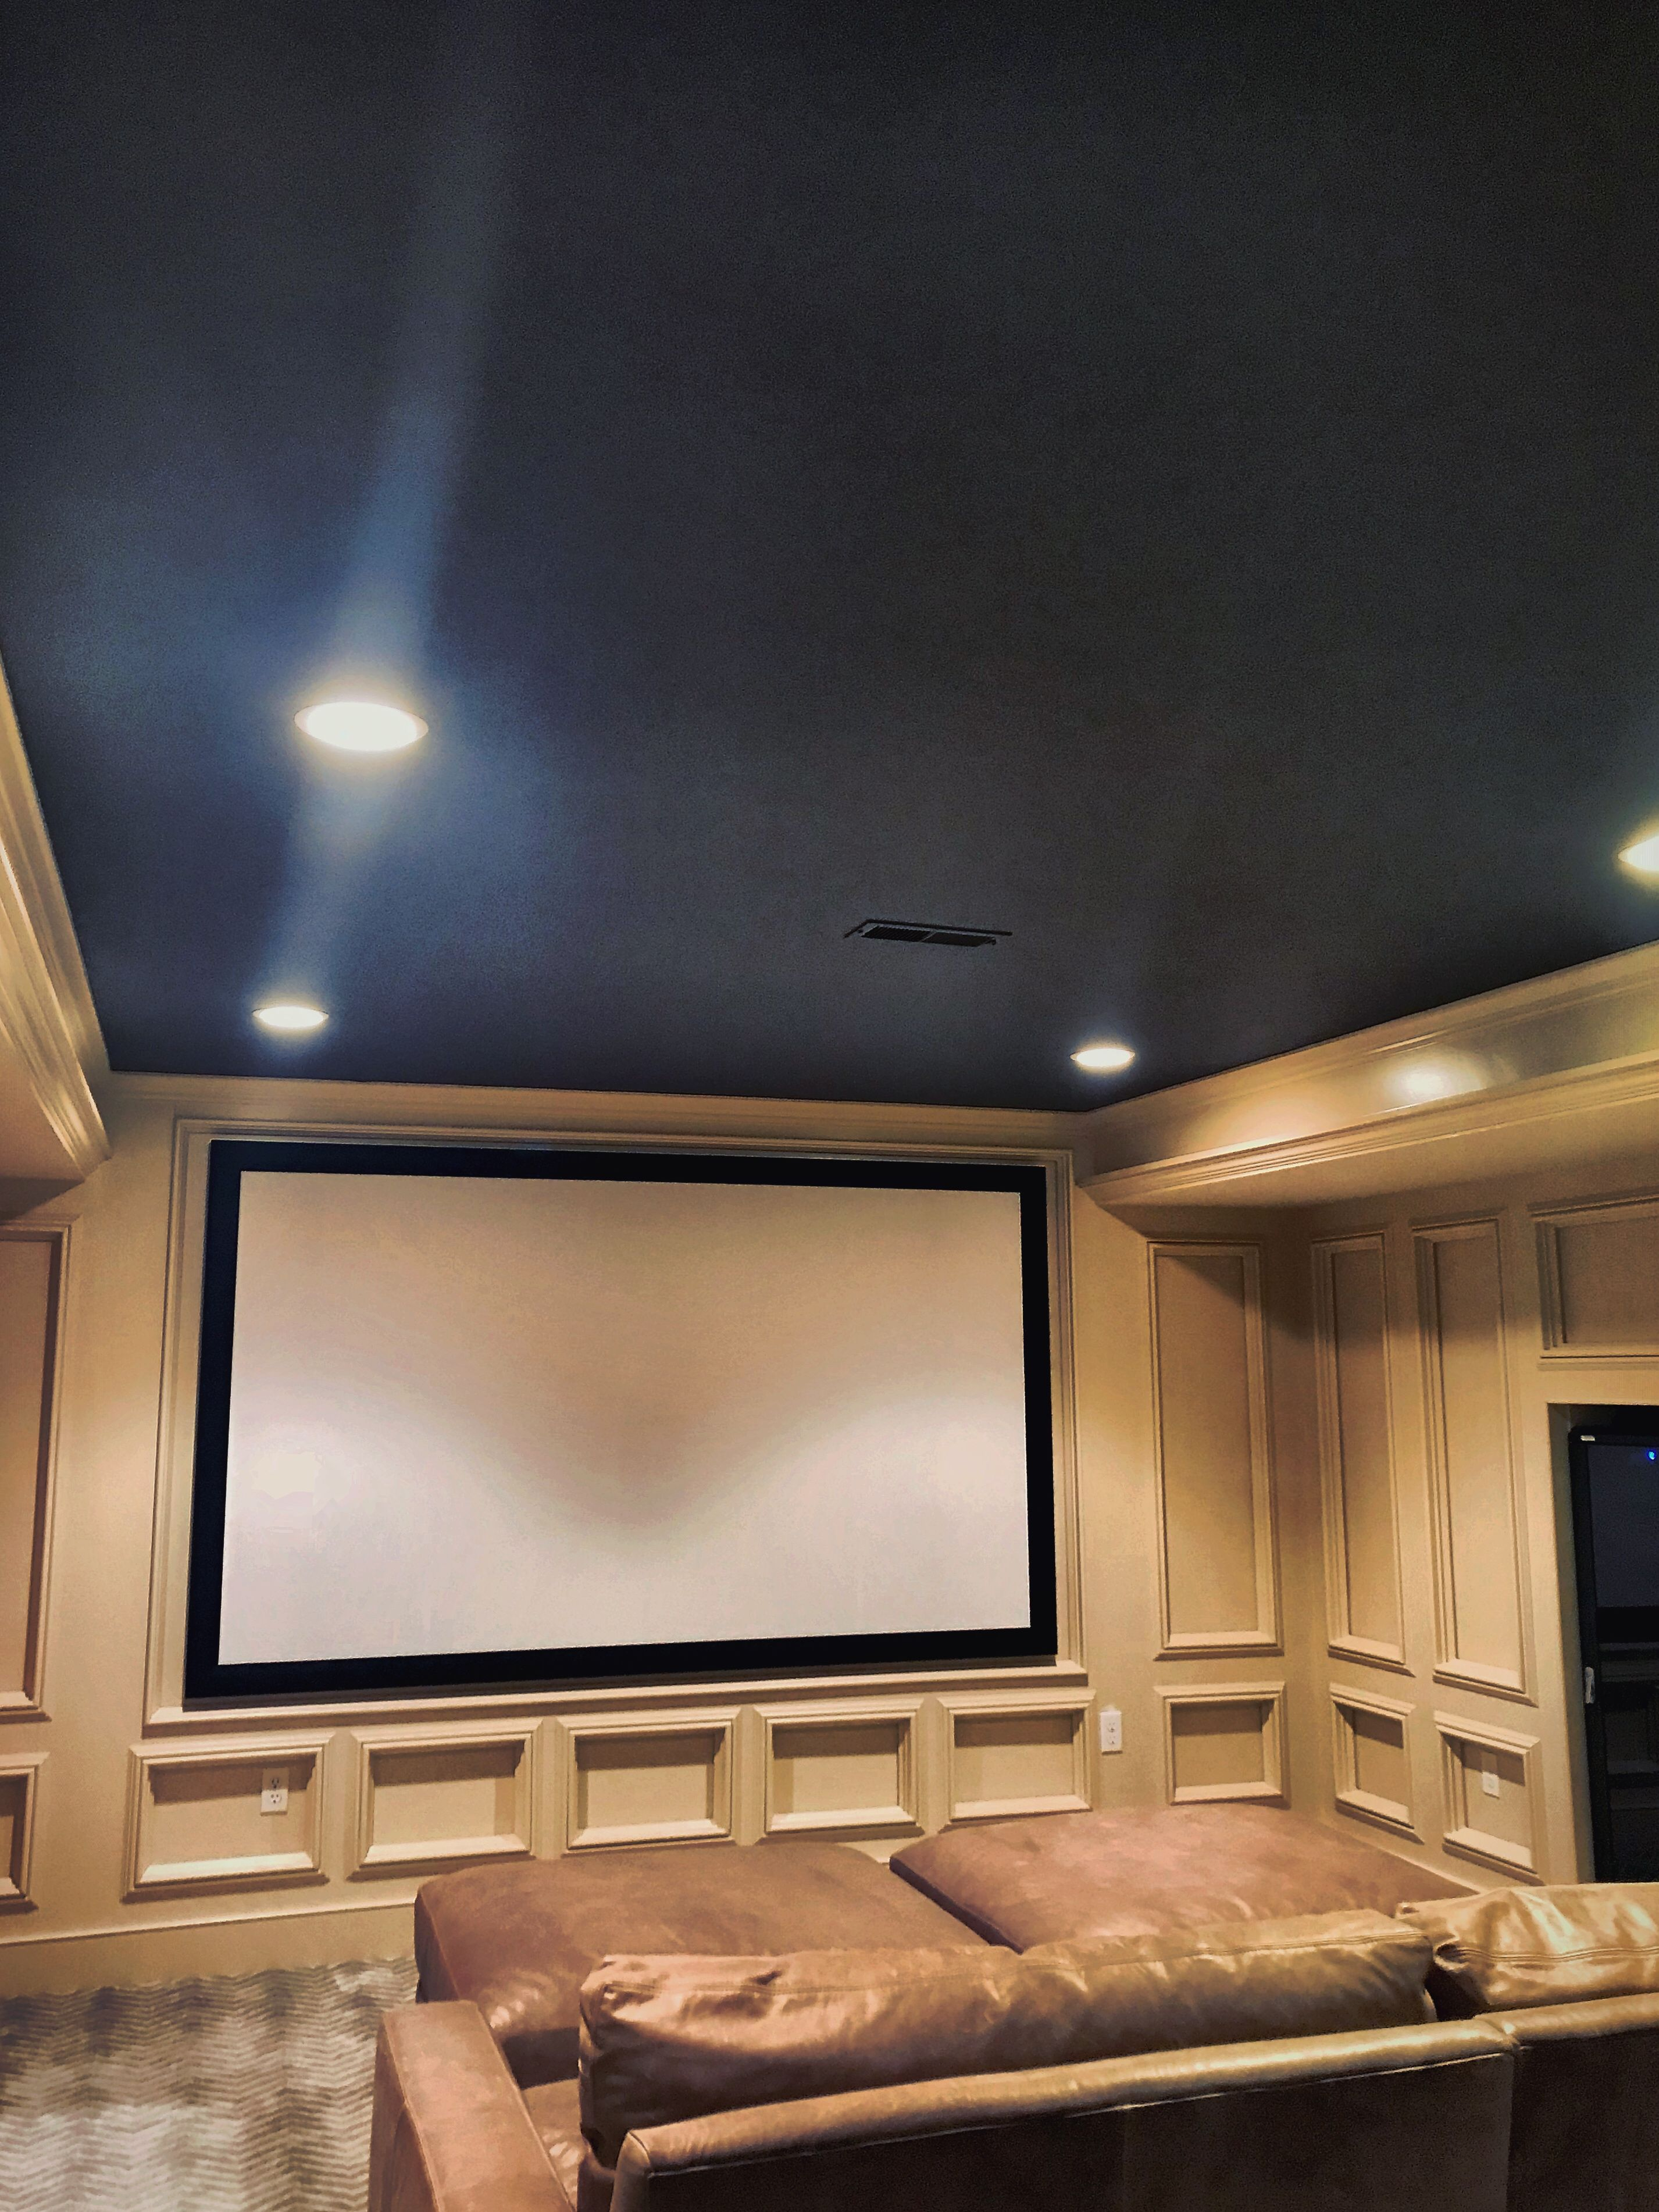 Media Room Done In Hingham